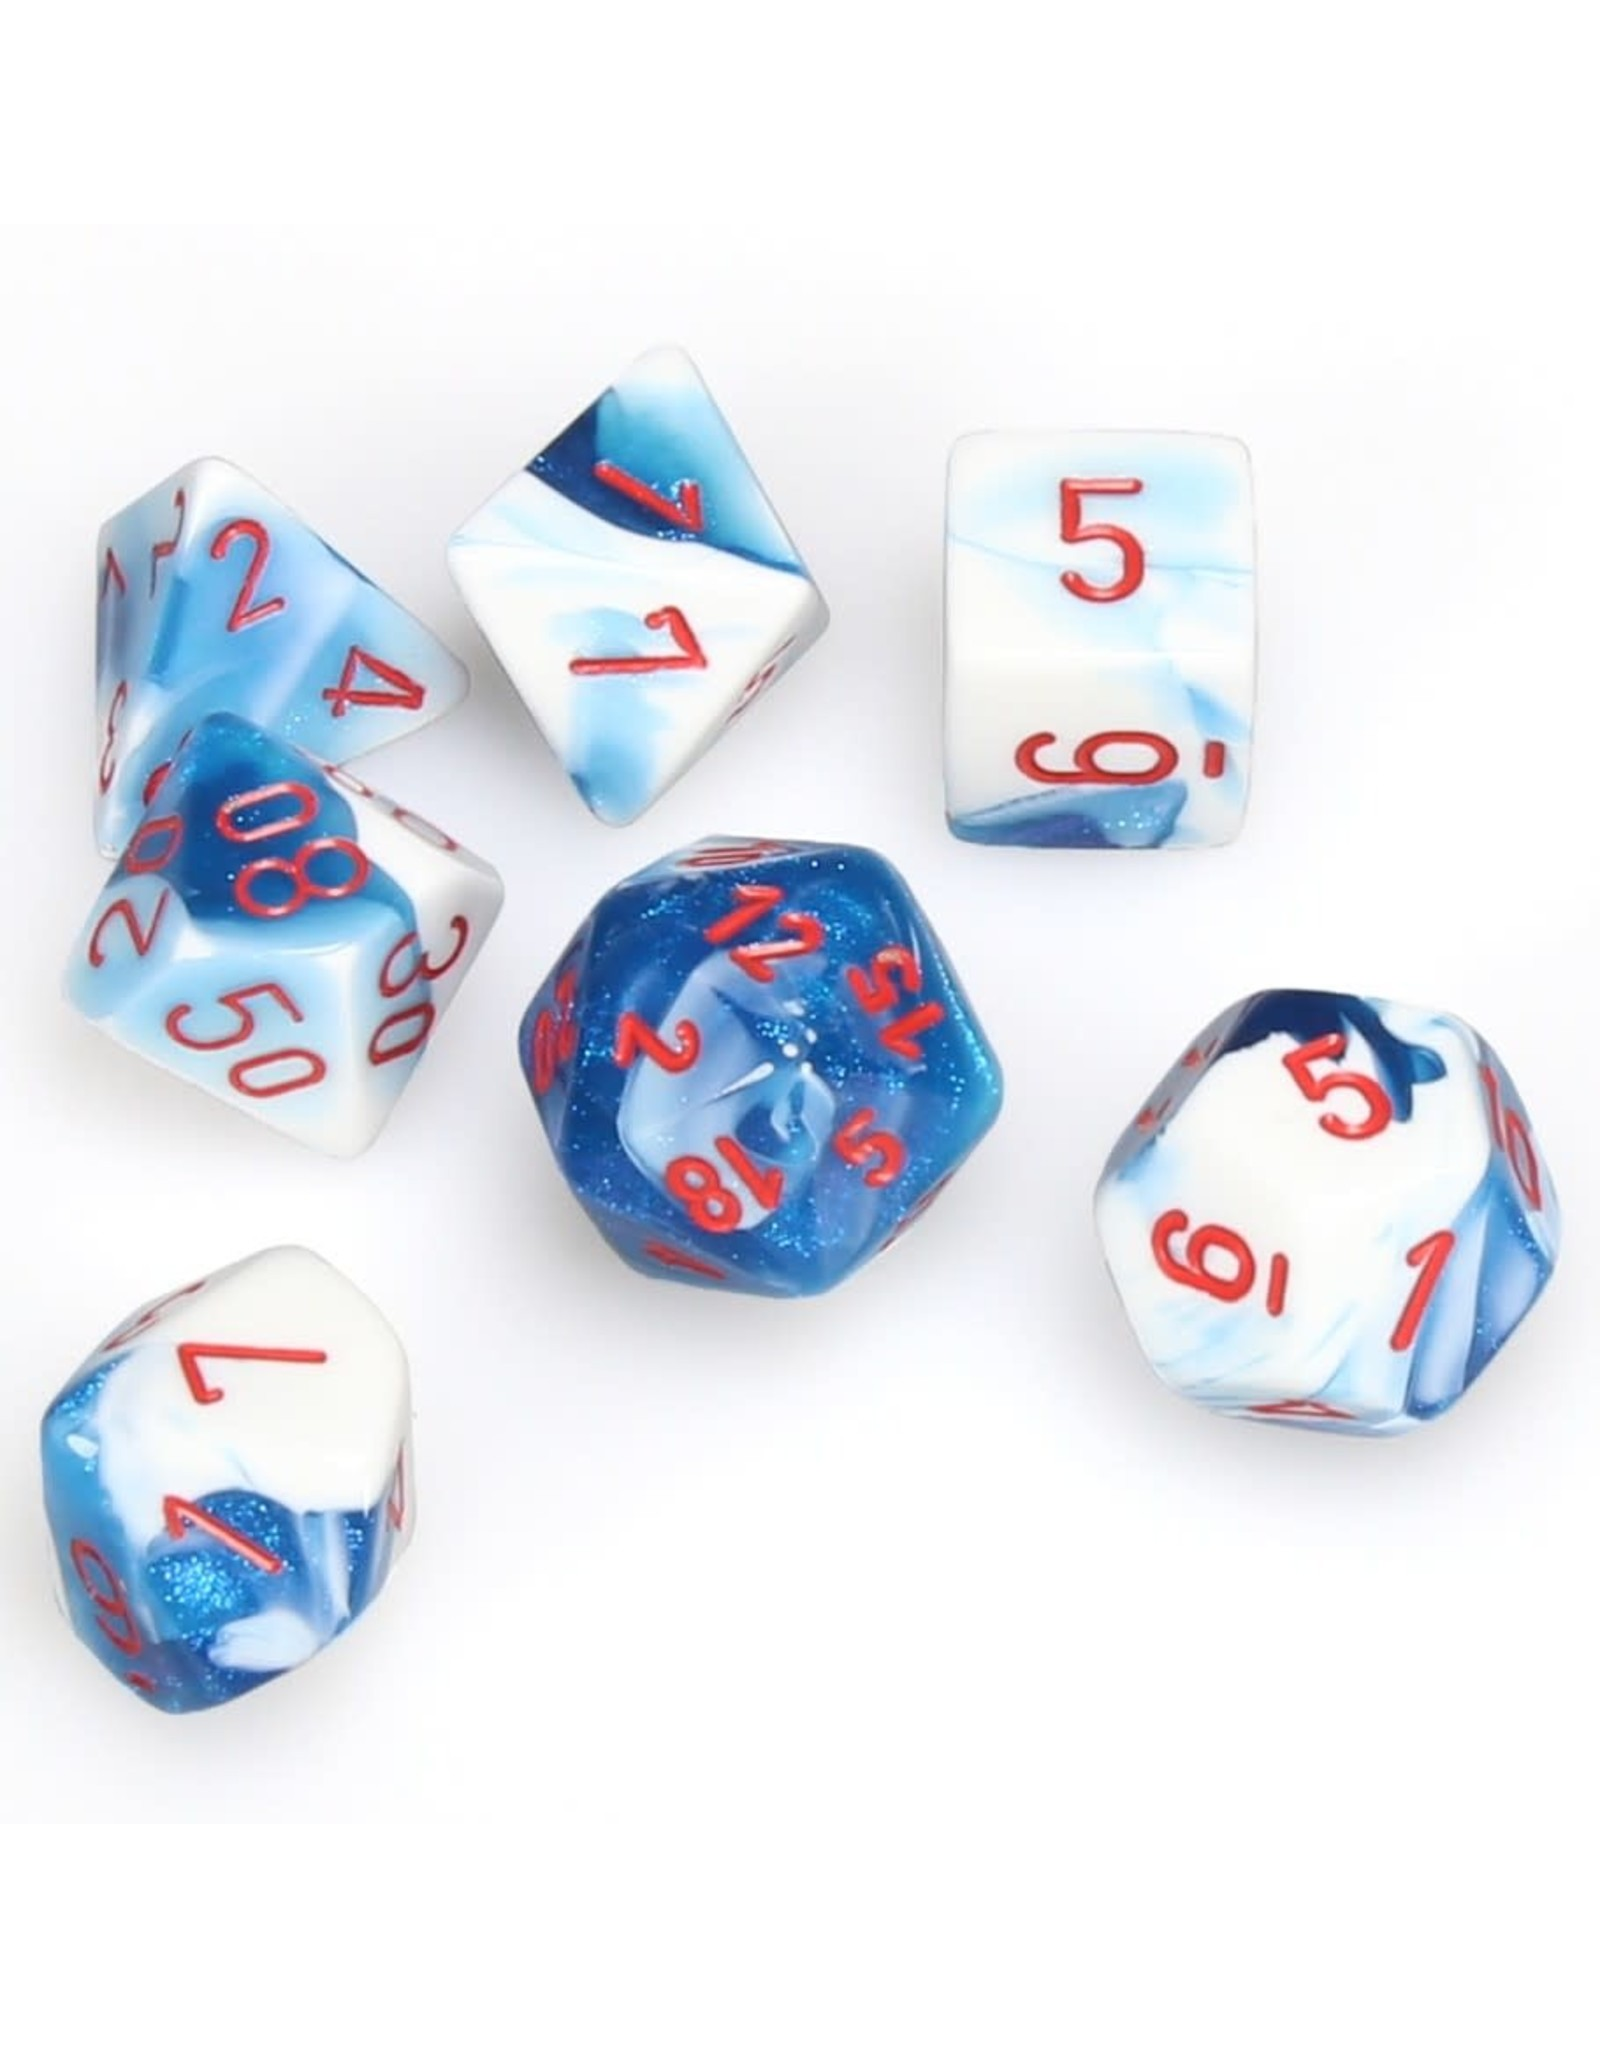 Chessex Polyhedral 7 Dice Set Gemini Astral Blue-White w/Red CHX26457